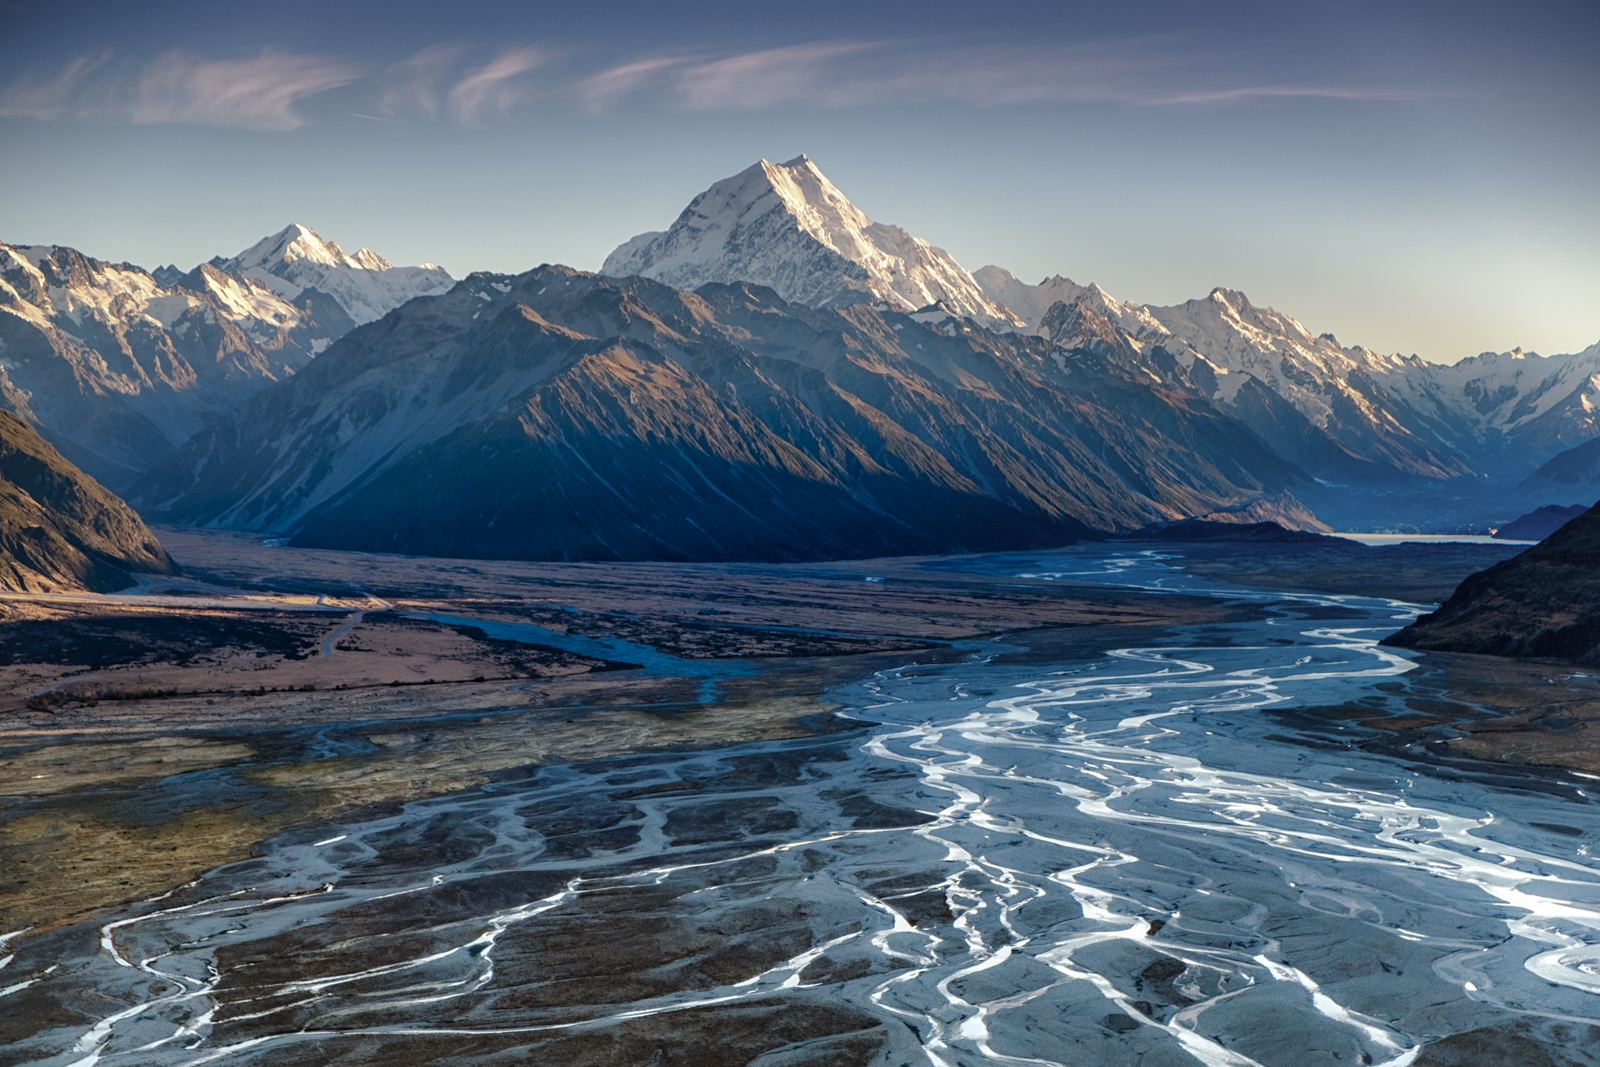 photo_workshop_Aoraki_river.jpg